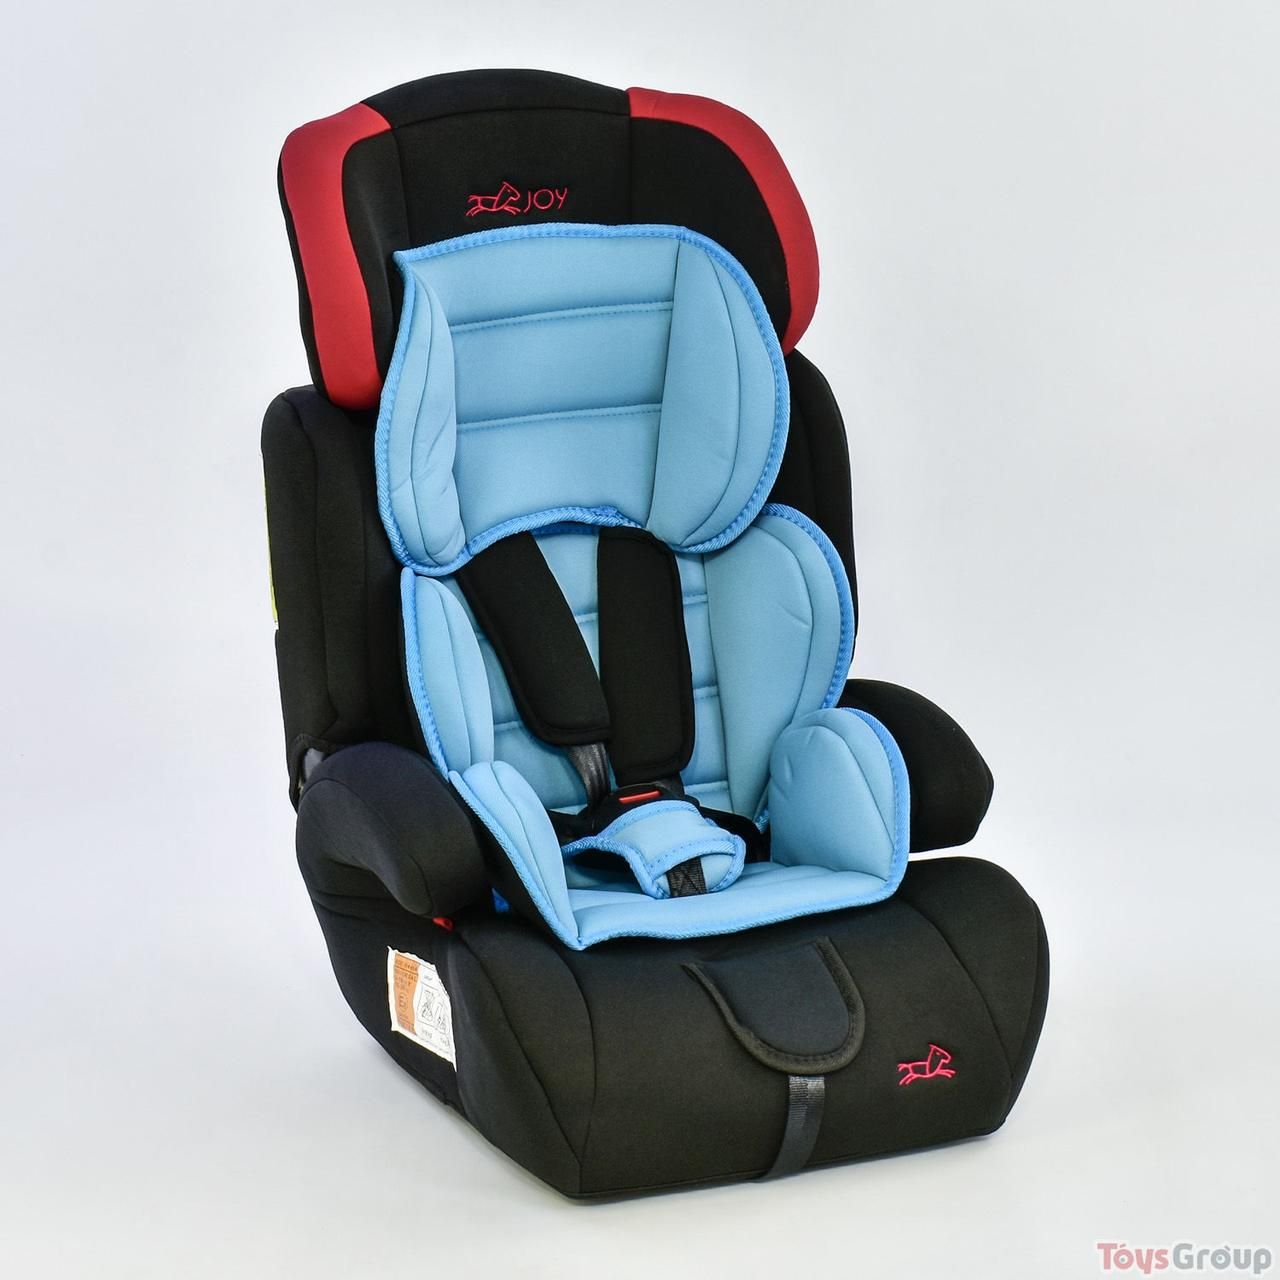 Автокресло JOY 8888 (4) LIGHT BLUE